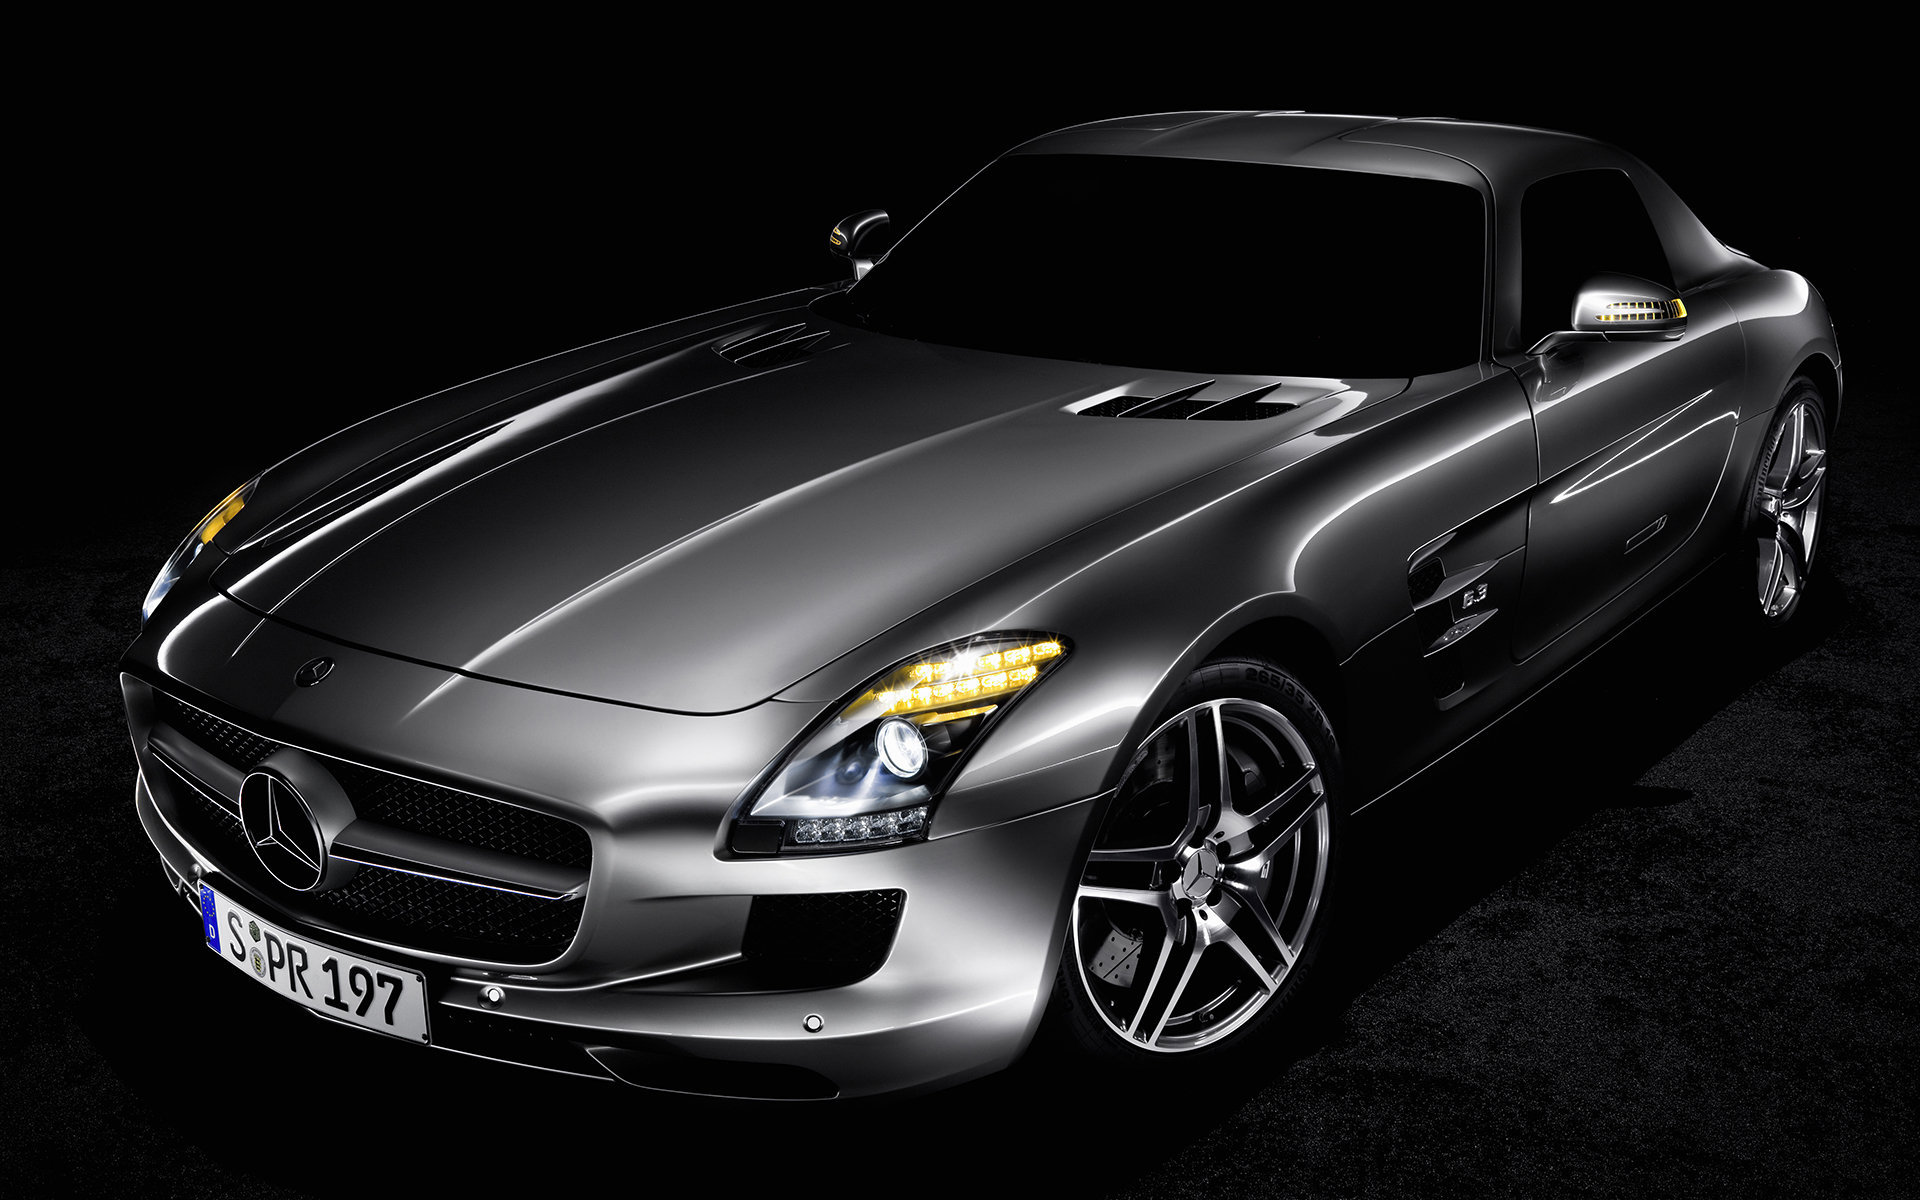 Mercedes sls amg 07 for Silverlit mercedes benz sls amg